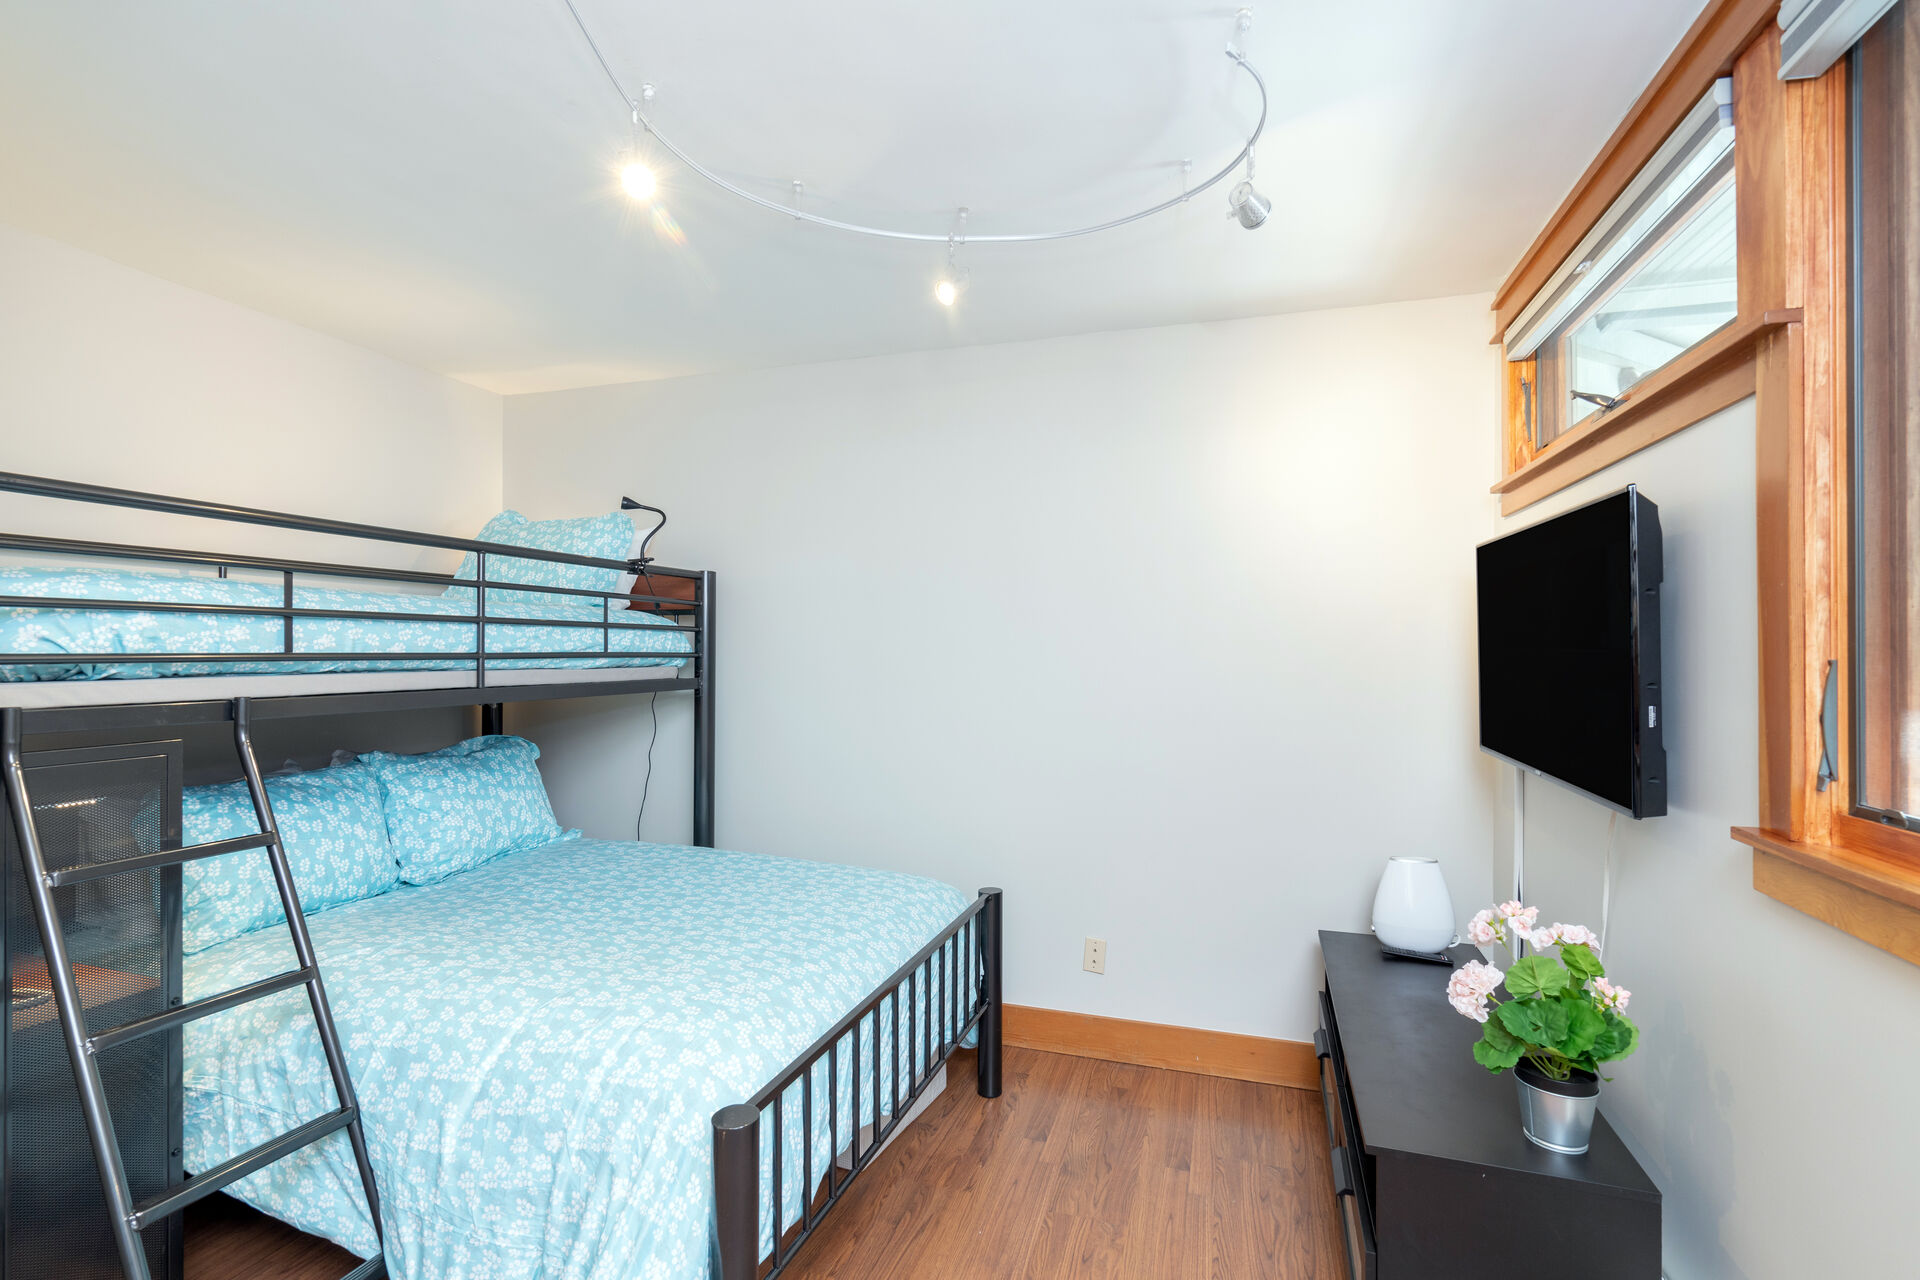 Guest bedroom with large bunk beds and mounted HD TV